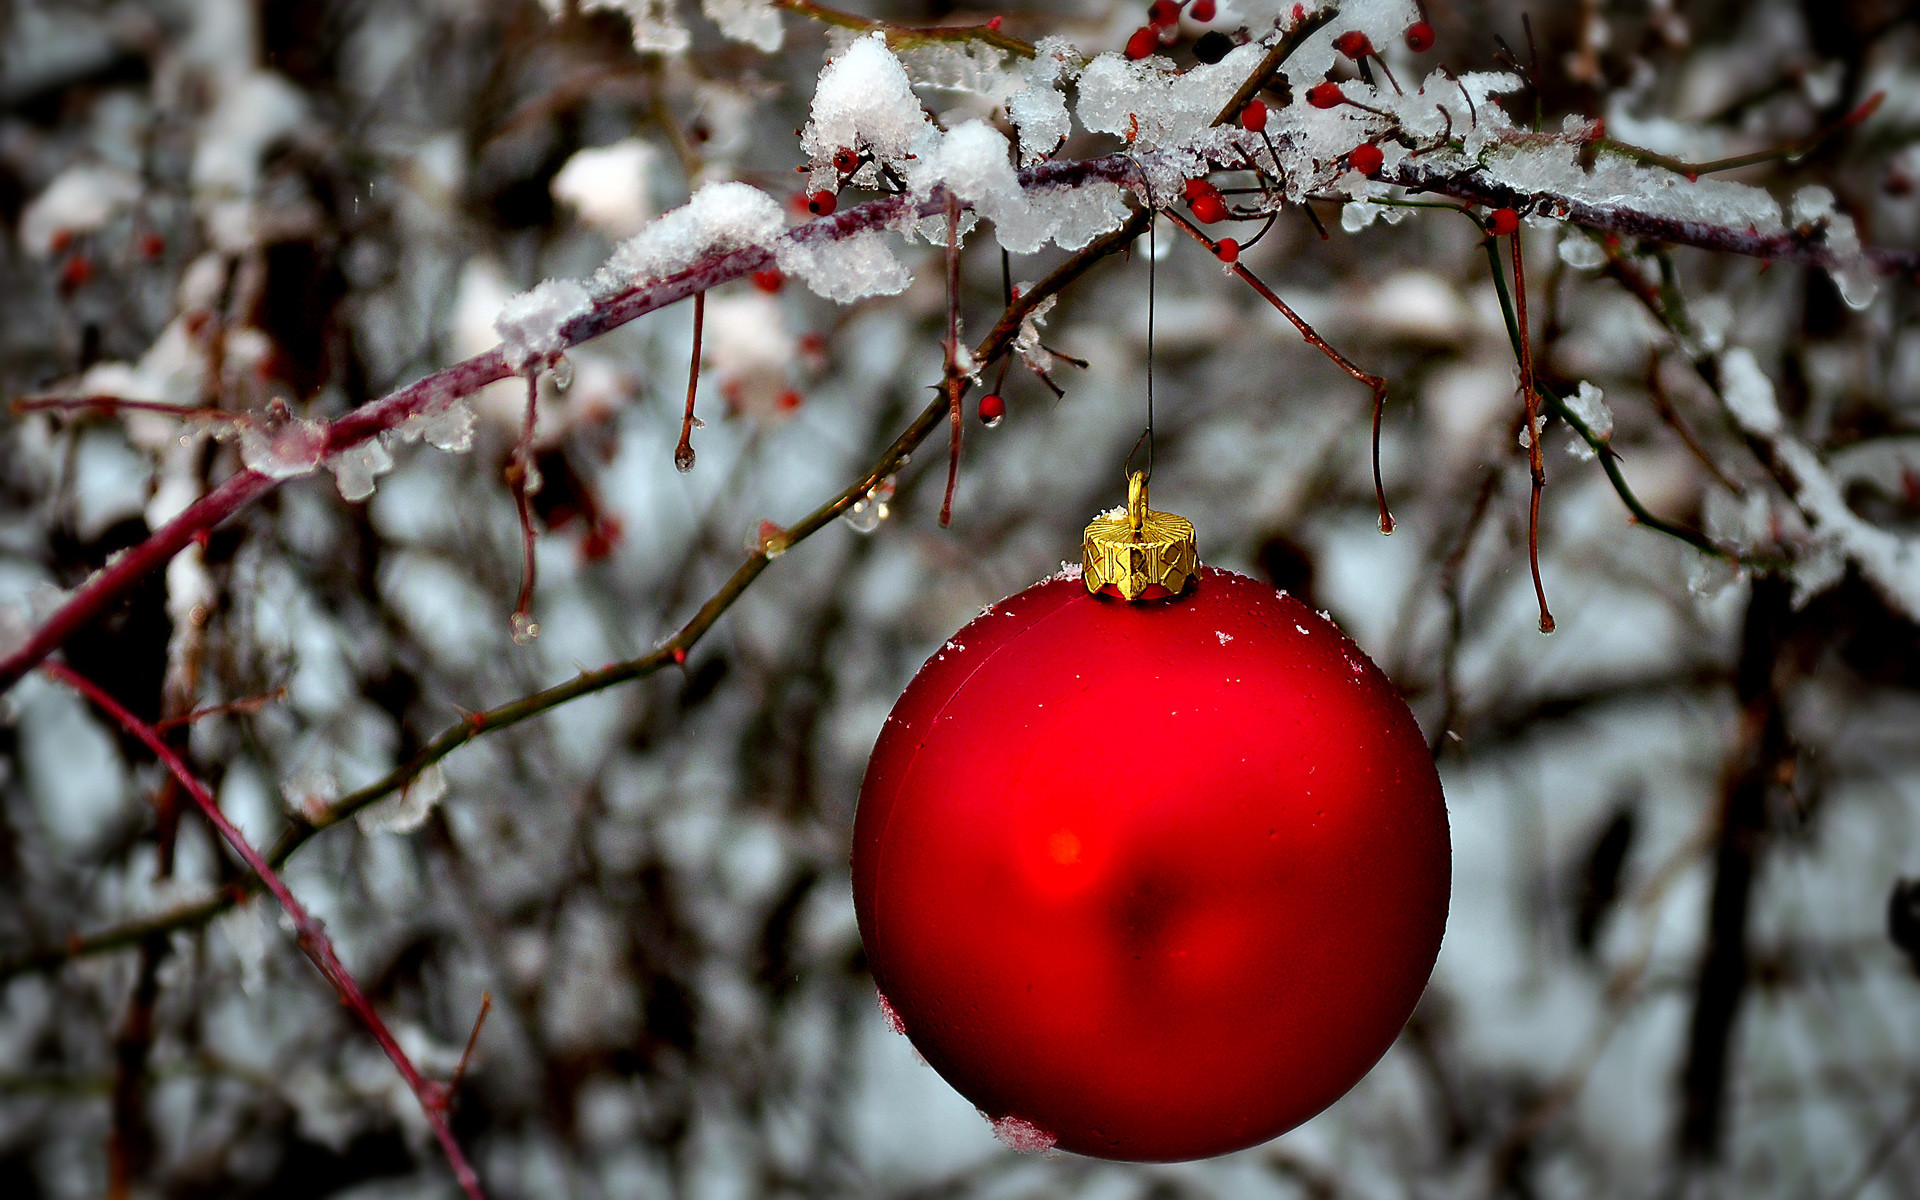 Red holiday ornament hanging in a snow covered bush outdoors in the woods